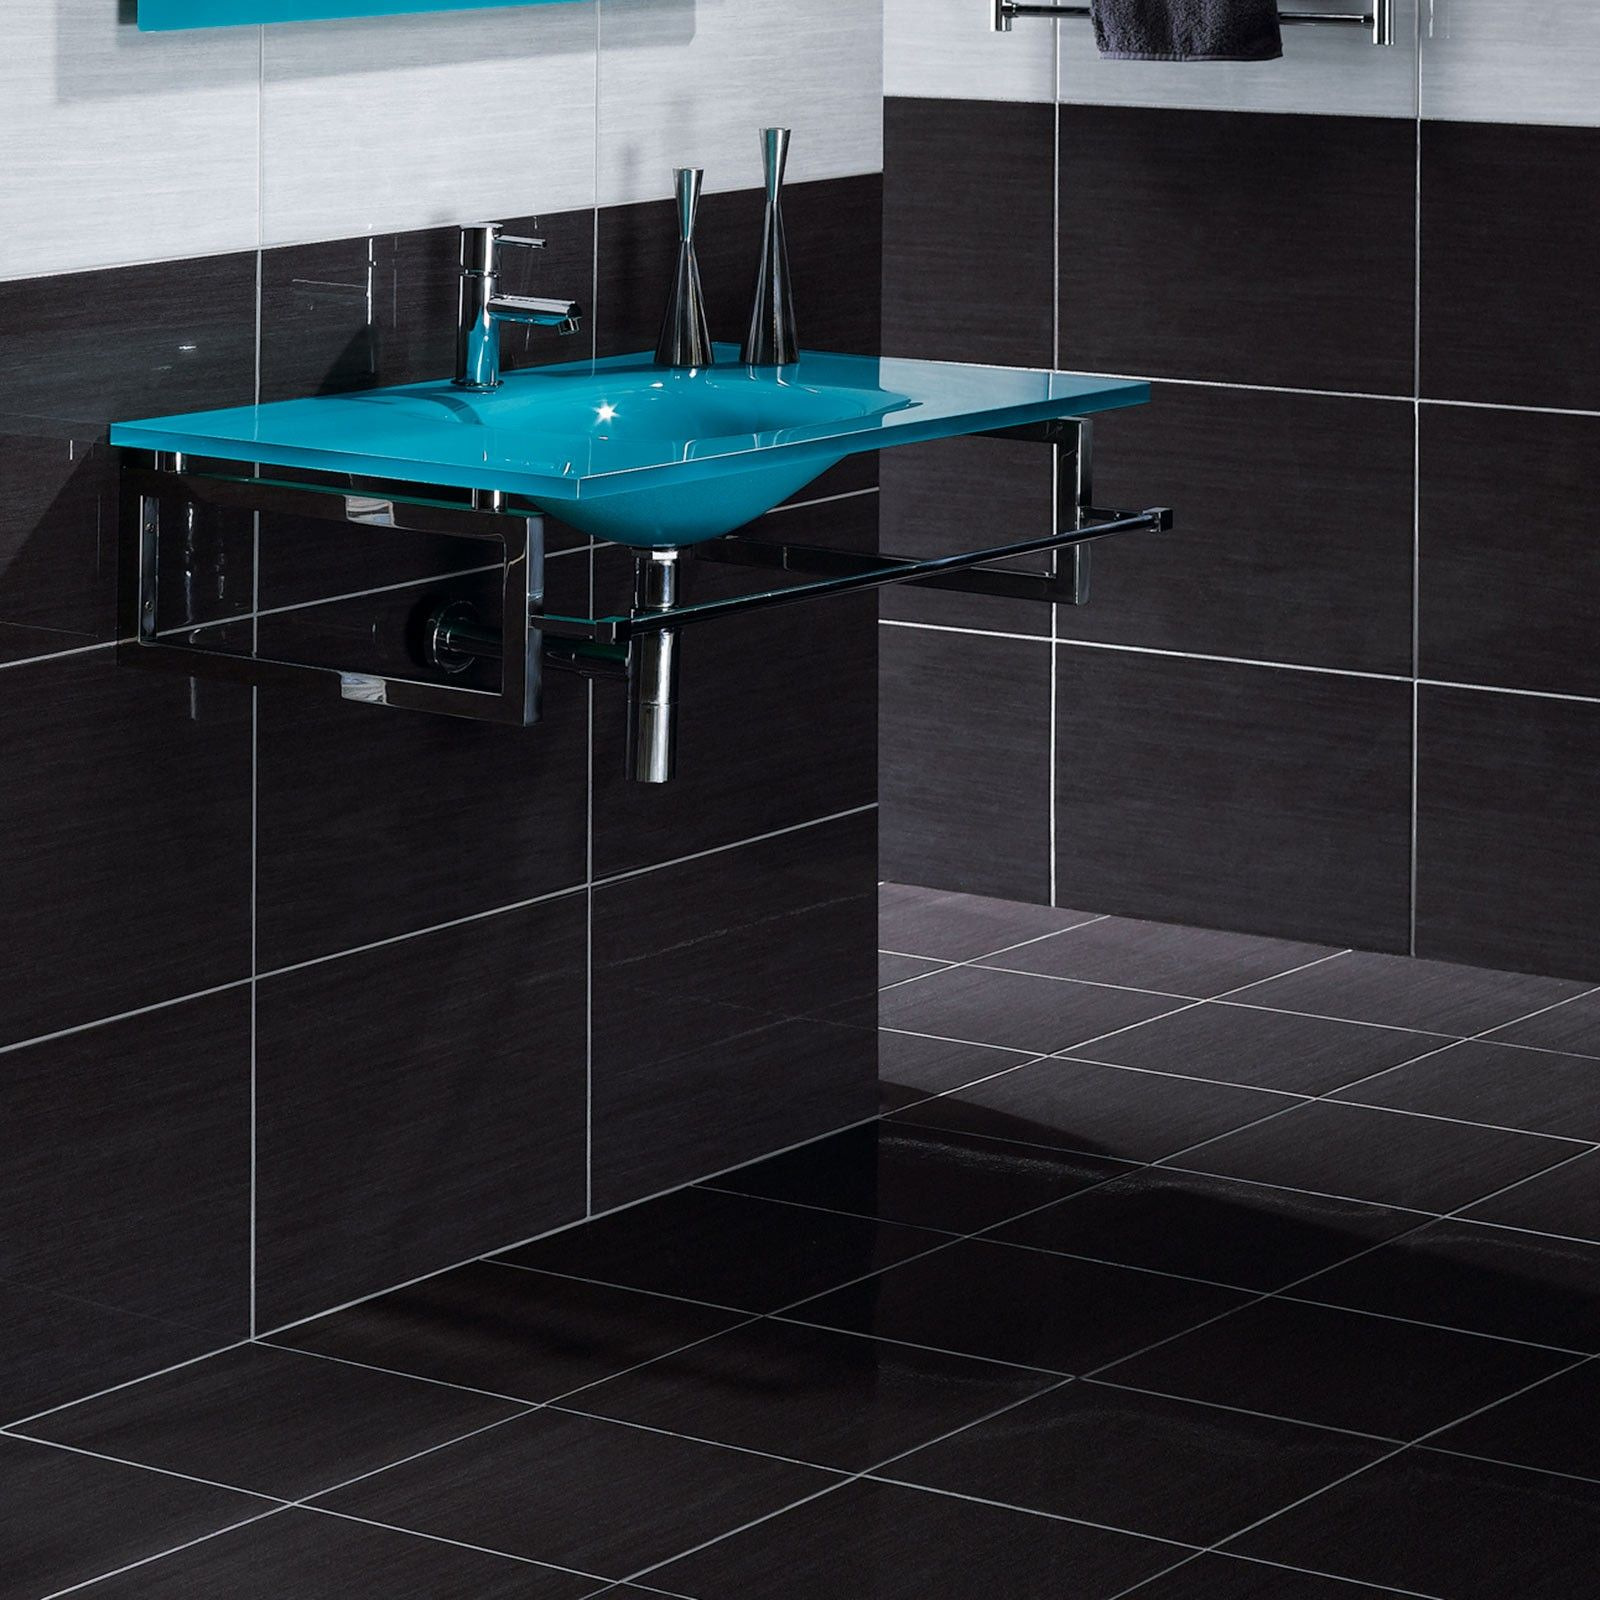 Black and white and turquoise bathroom ideas - Forum Antracite Ceramic Wall Tile Black And White Bathroom Ideas Black Tiles Better